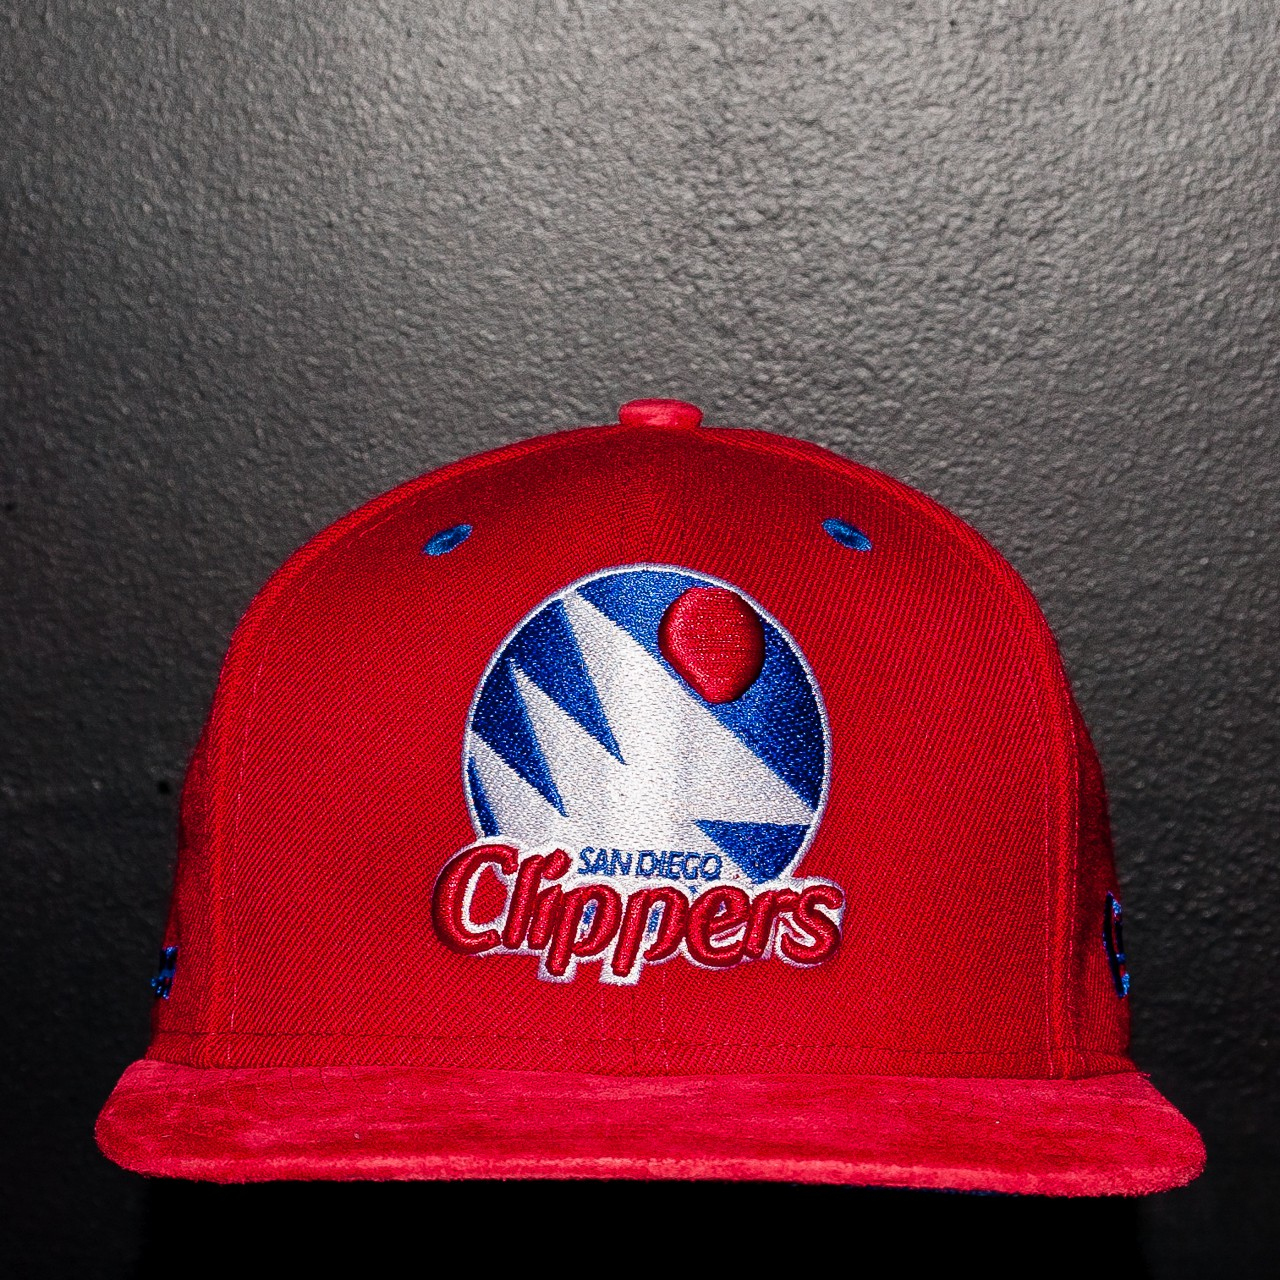 LA Clippers Suede Strap Back